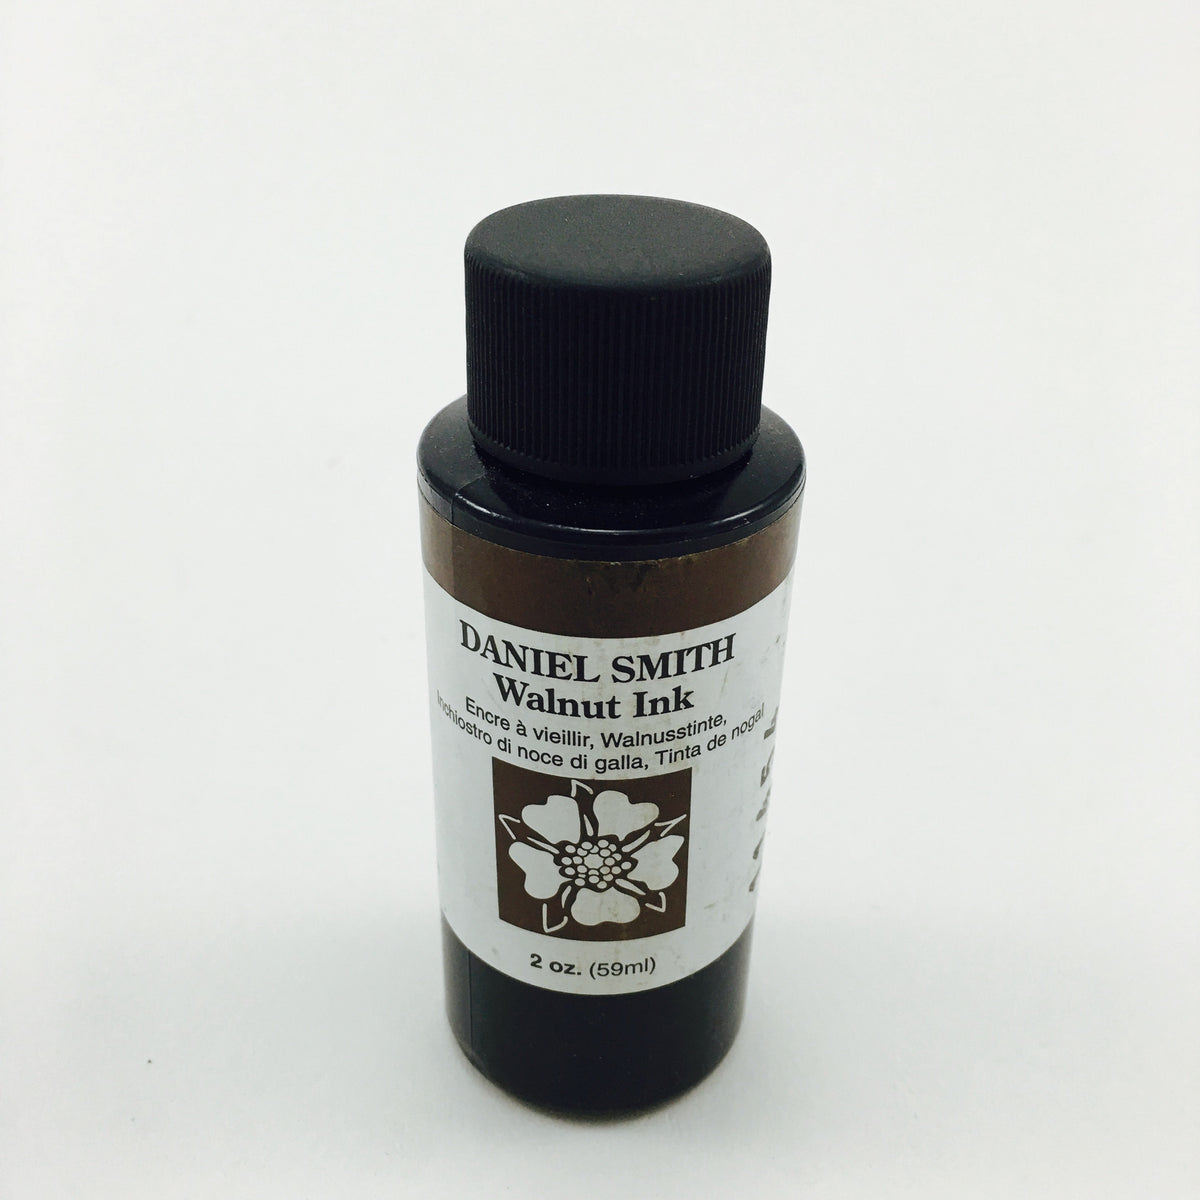 Daniel Smith Walnut Ink - 2.5 oz.